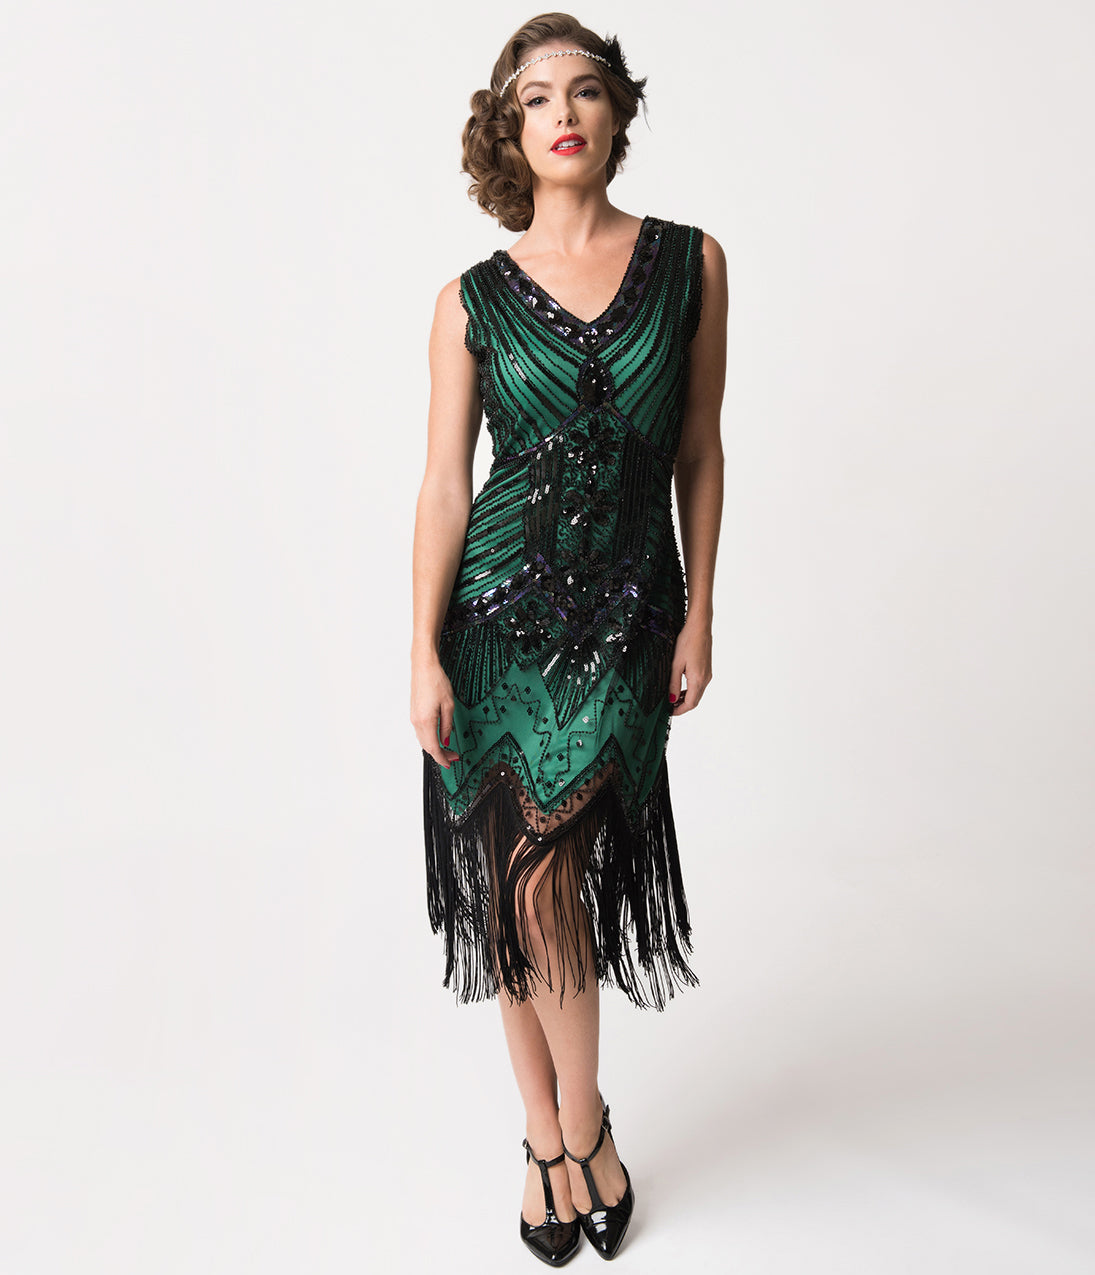 Best 1920s Prom Dresses – Great Gatsby Style Gowns Unique Vintage 1920S Deco Green  Black Sequin Veronique Fringe Flapper Dress $98.00 AT vintagedancer.com